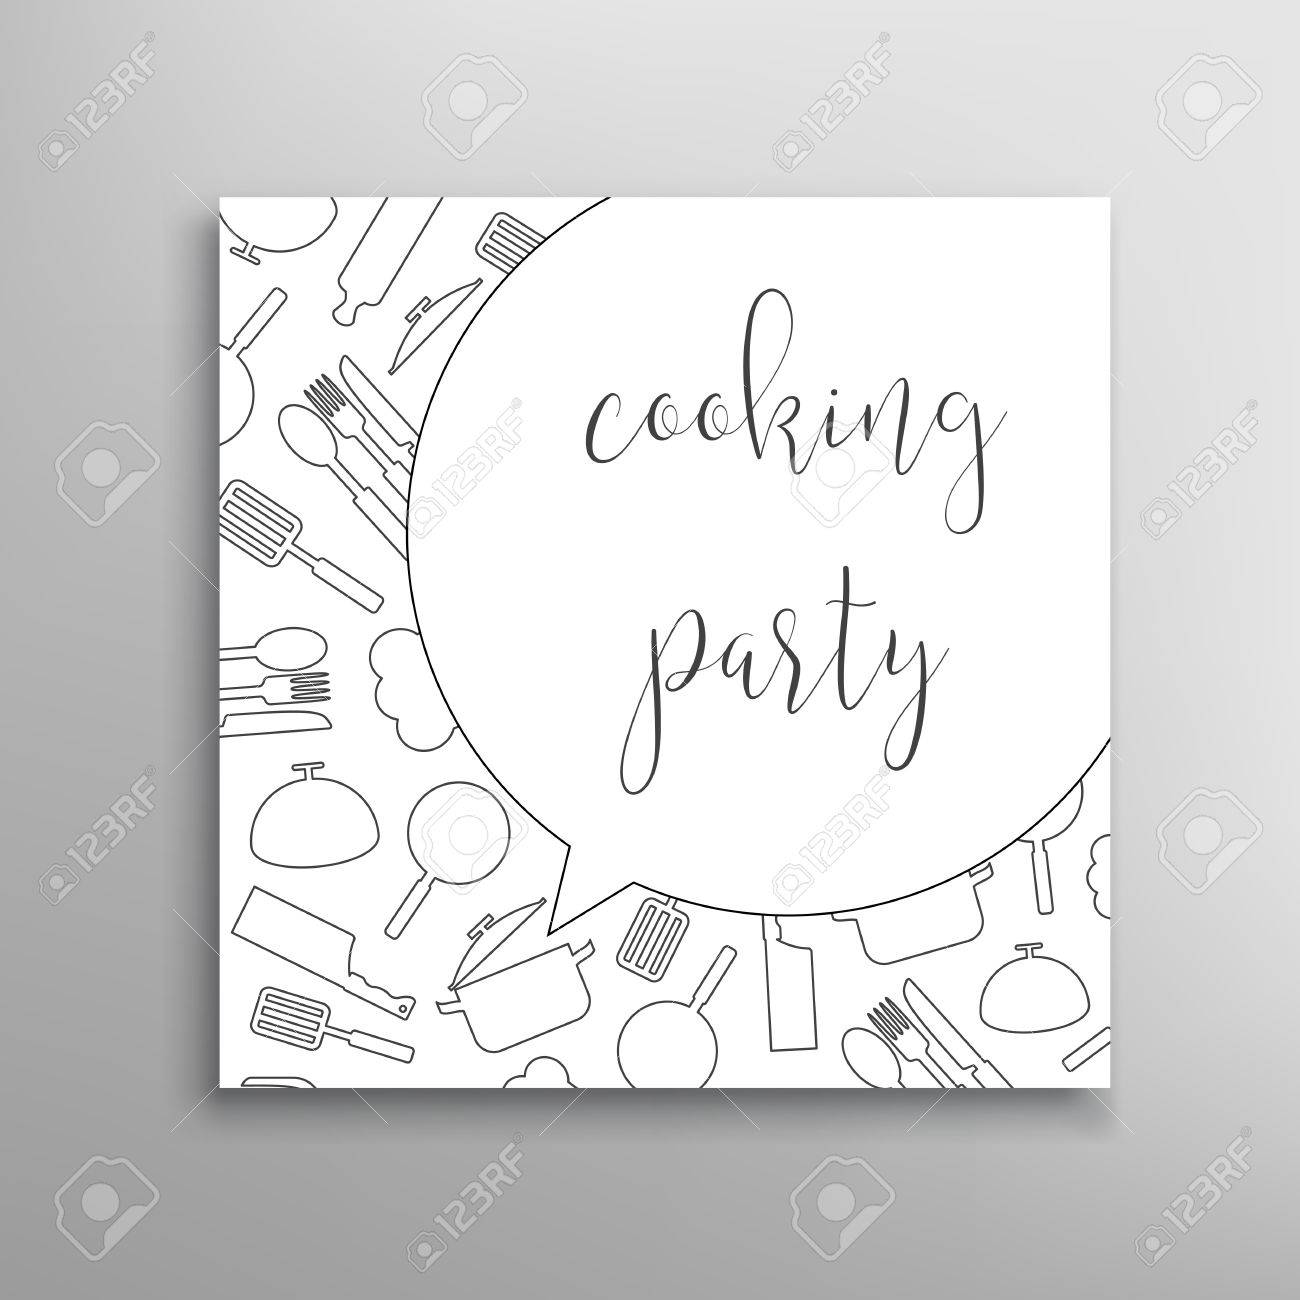 Cooking Party Invitation. Culinary School Vector Template Royalty ...